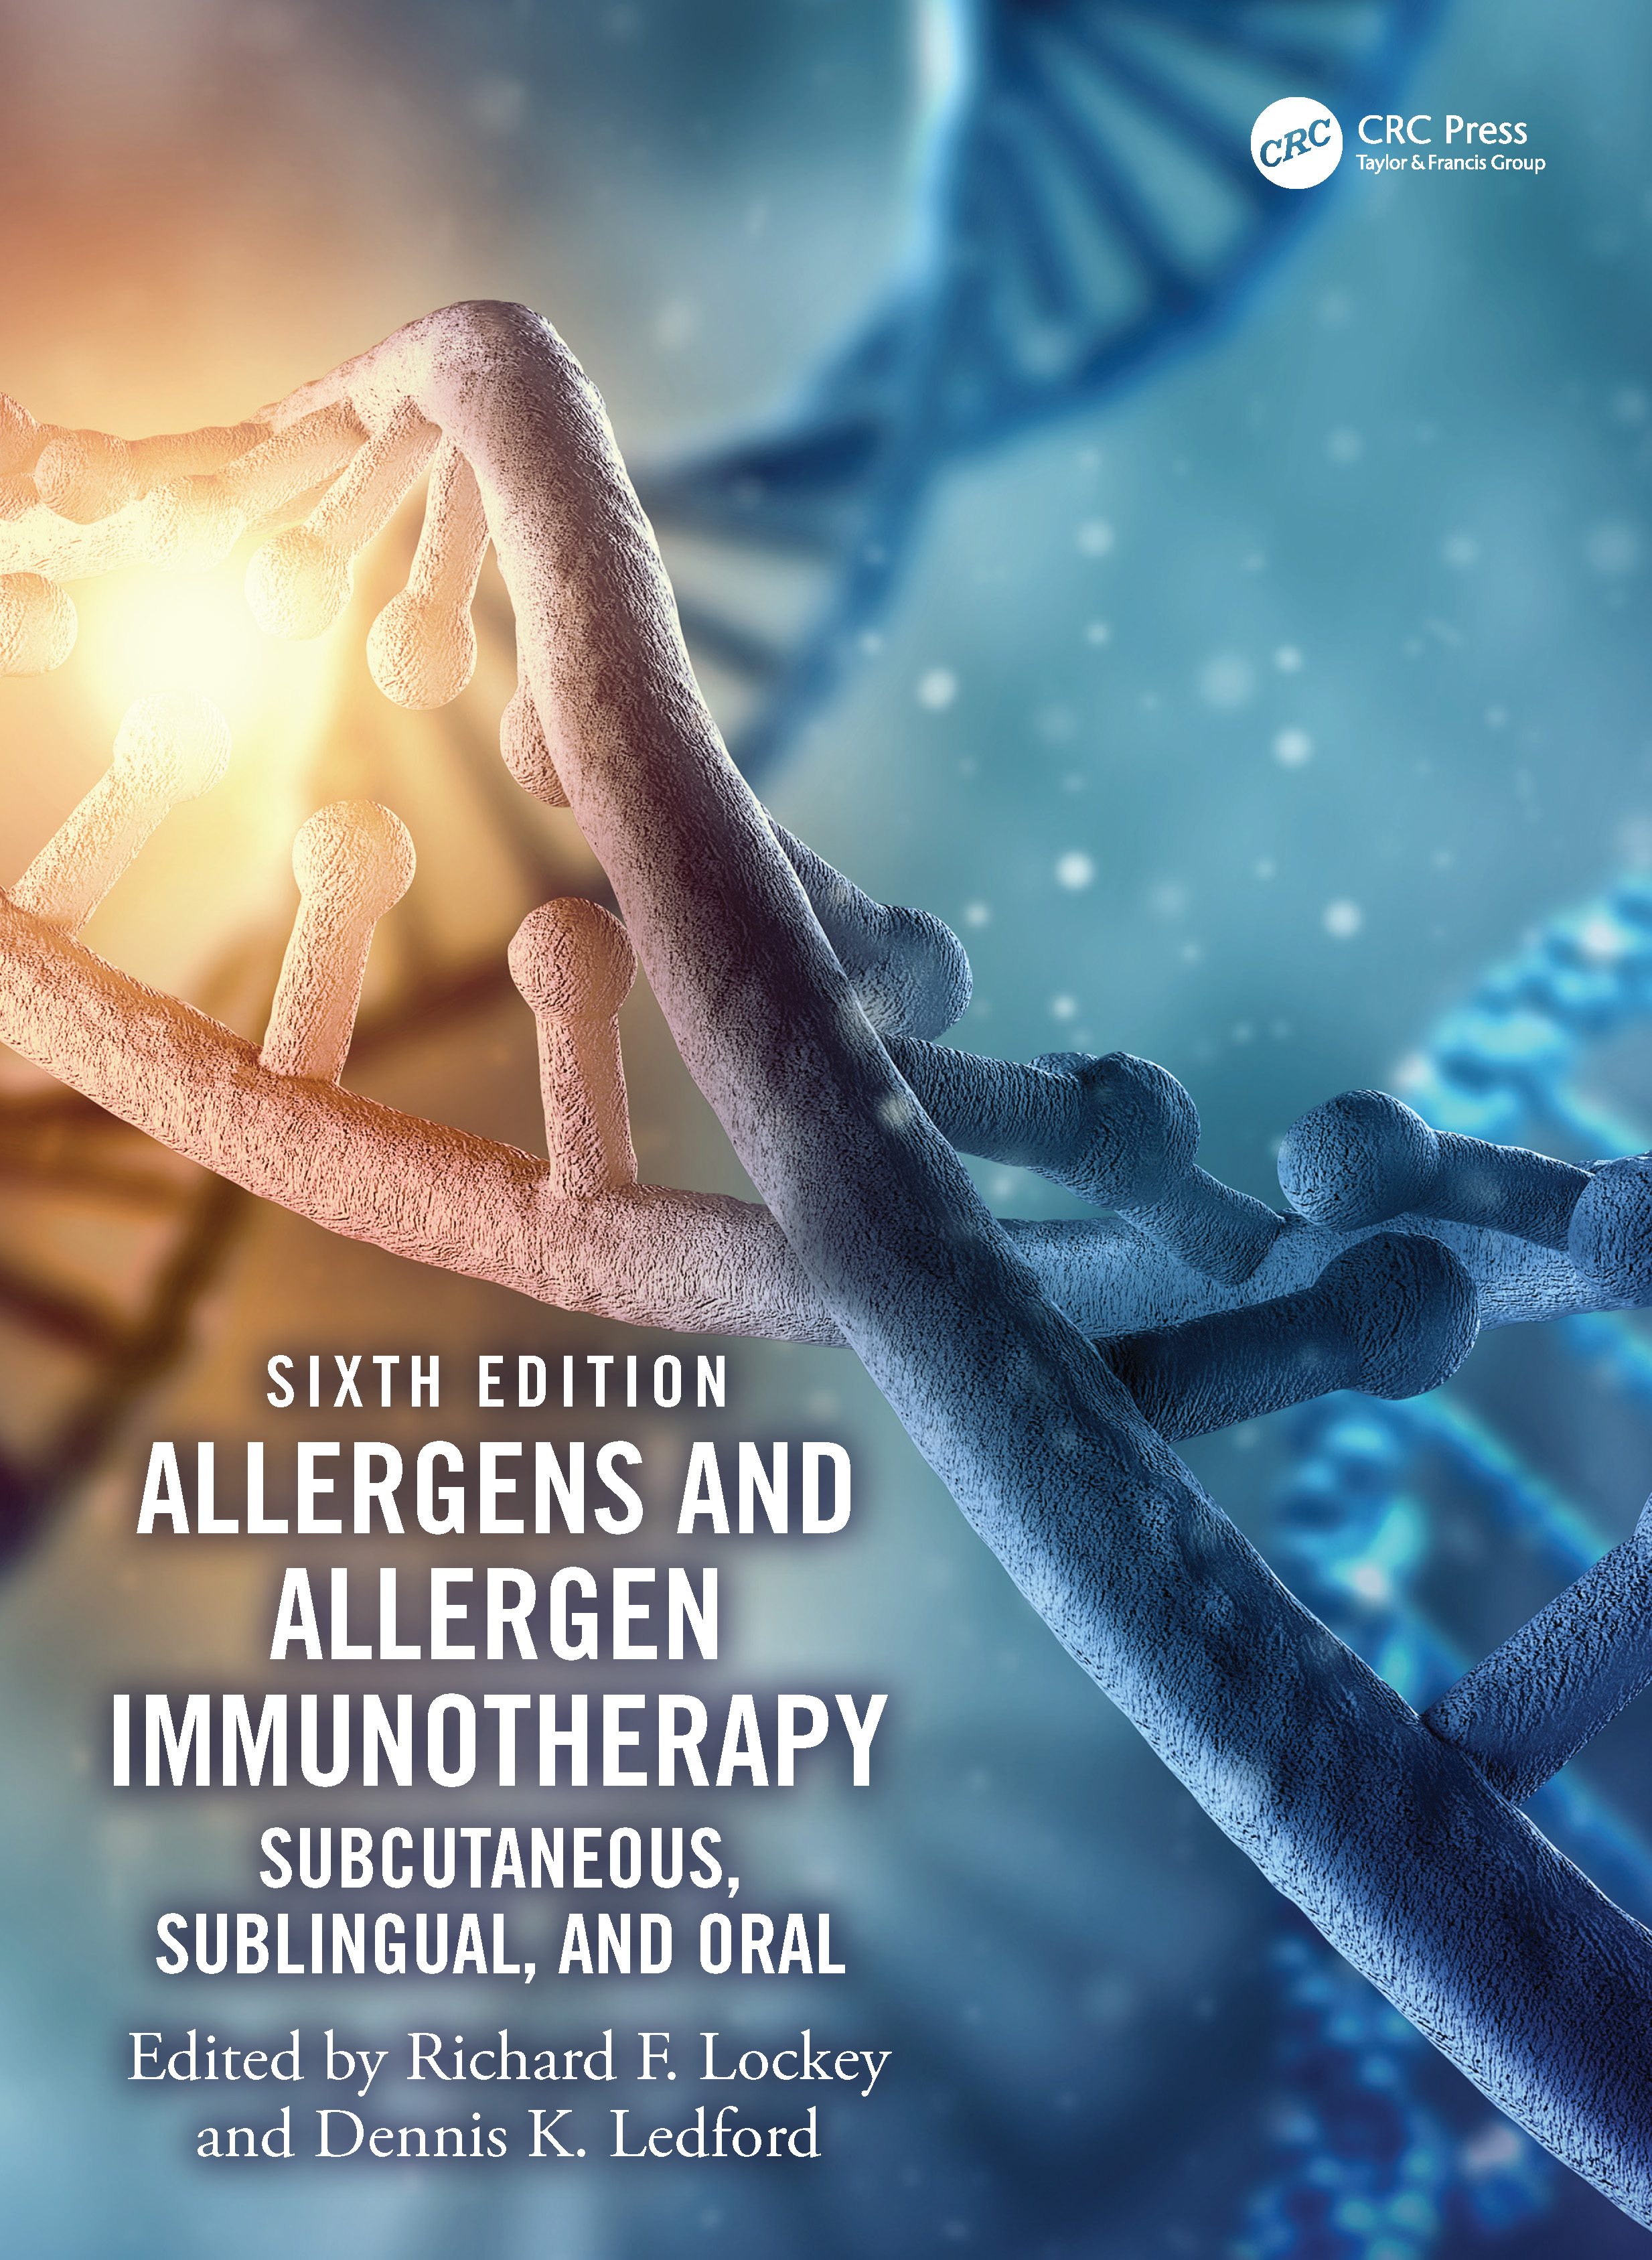 Allergens and Allergen Immunotherapy: Subcutaneous, Sublingual and Oral, Sixth Edition book cover